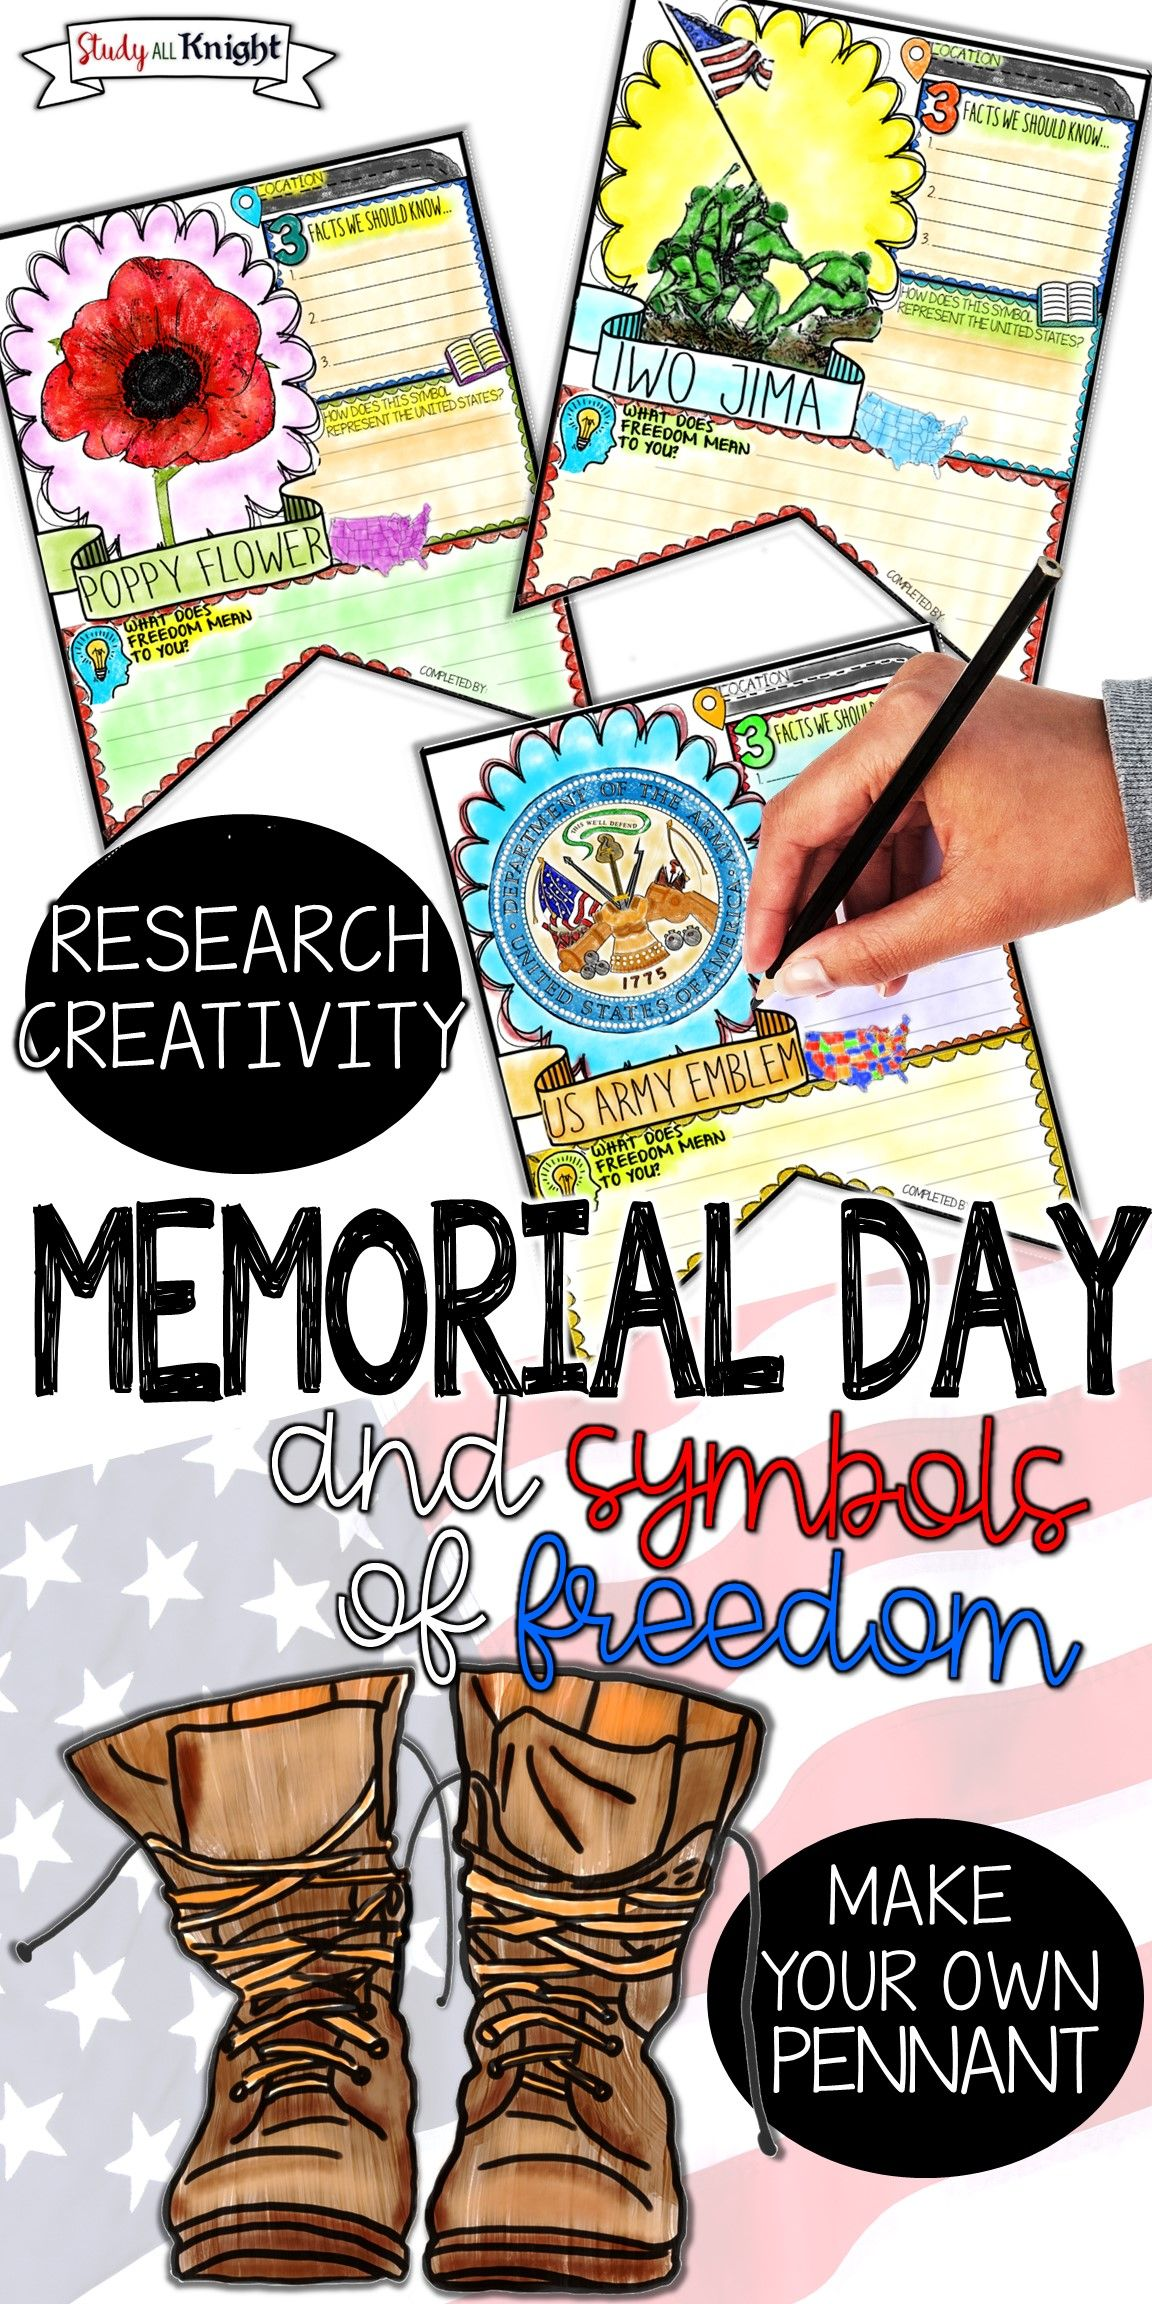 Memorial Day Symbols Of Freedom Research Pennant Make Your Own